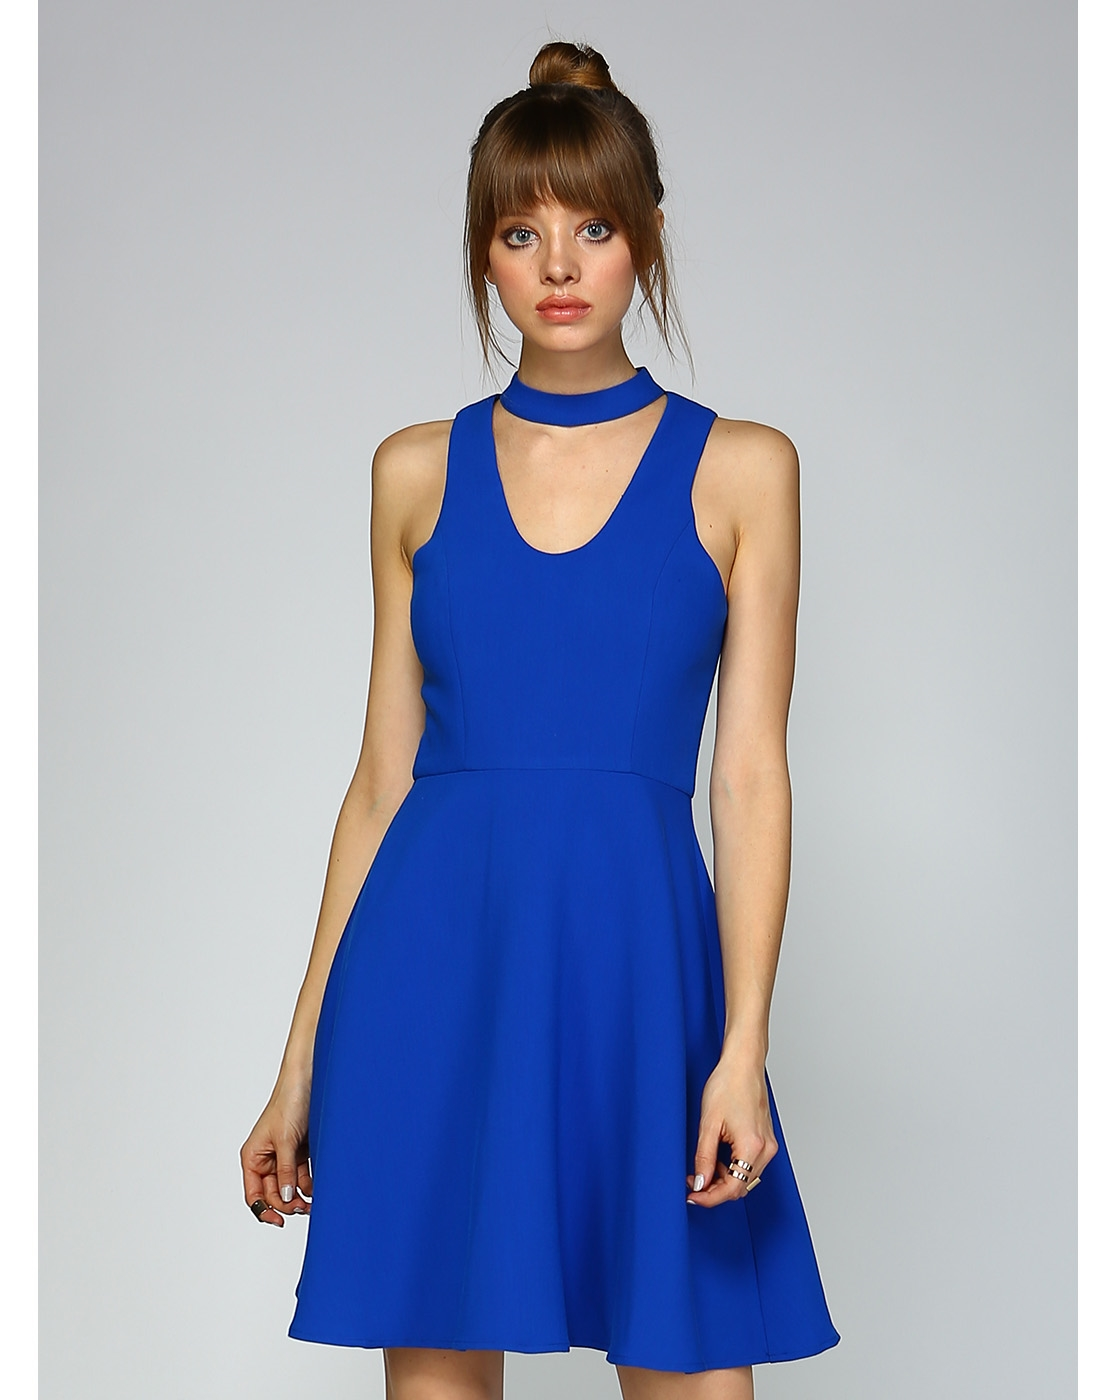 SIMPLE FIT AND FLARE DRESS - orangeshine.com